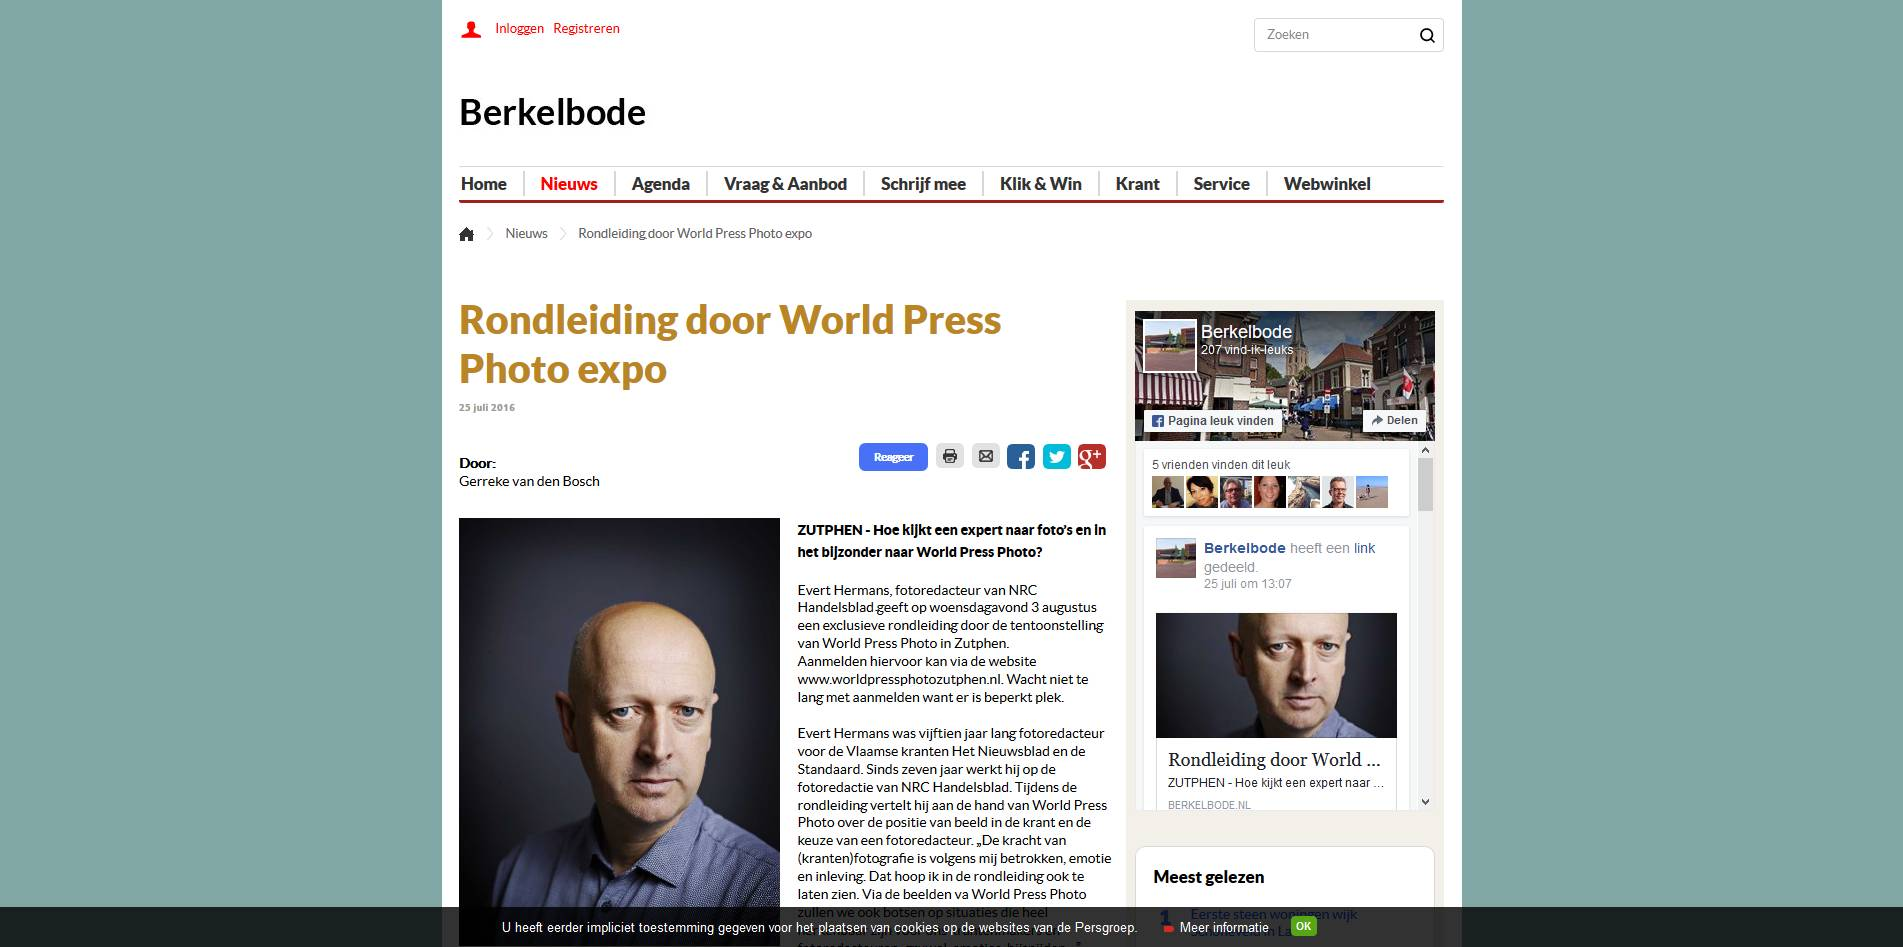 160725 Berkelbode Rondleiding_door_World_Press_Photo_expo_-_2016-07-27_10.32.40